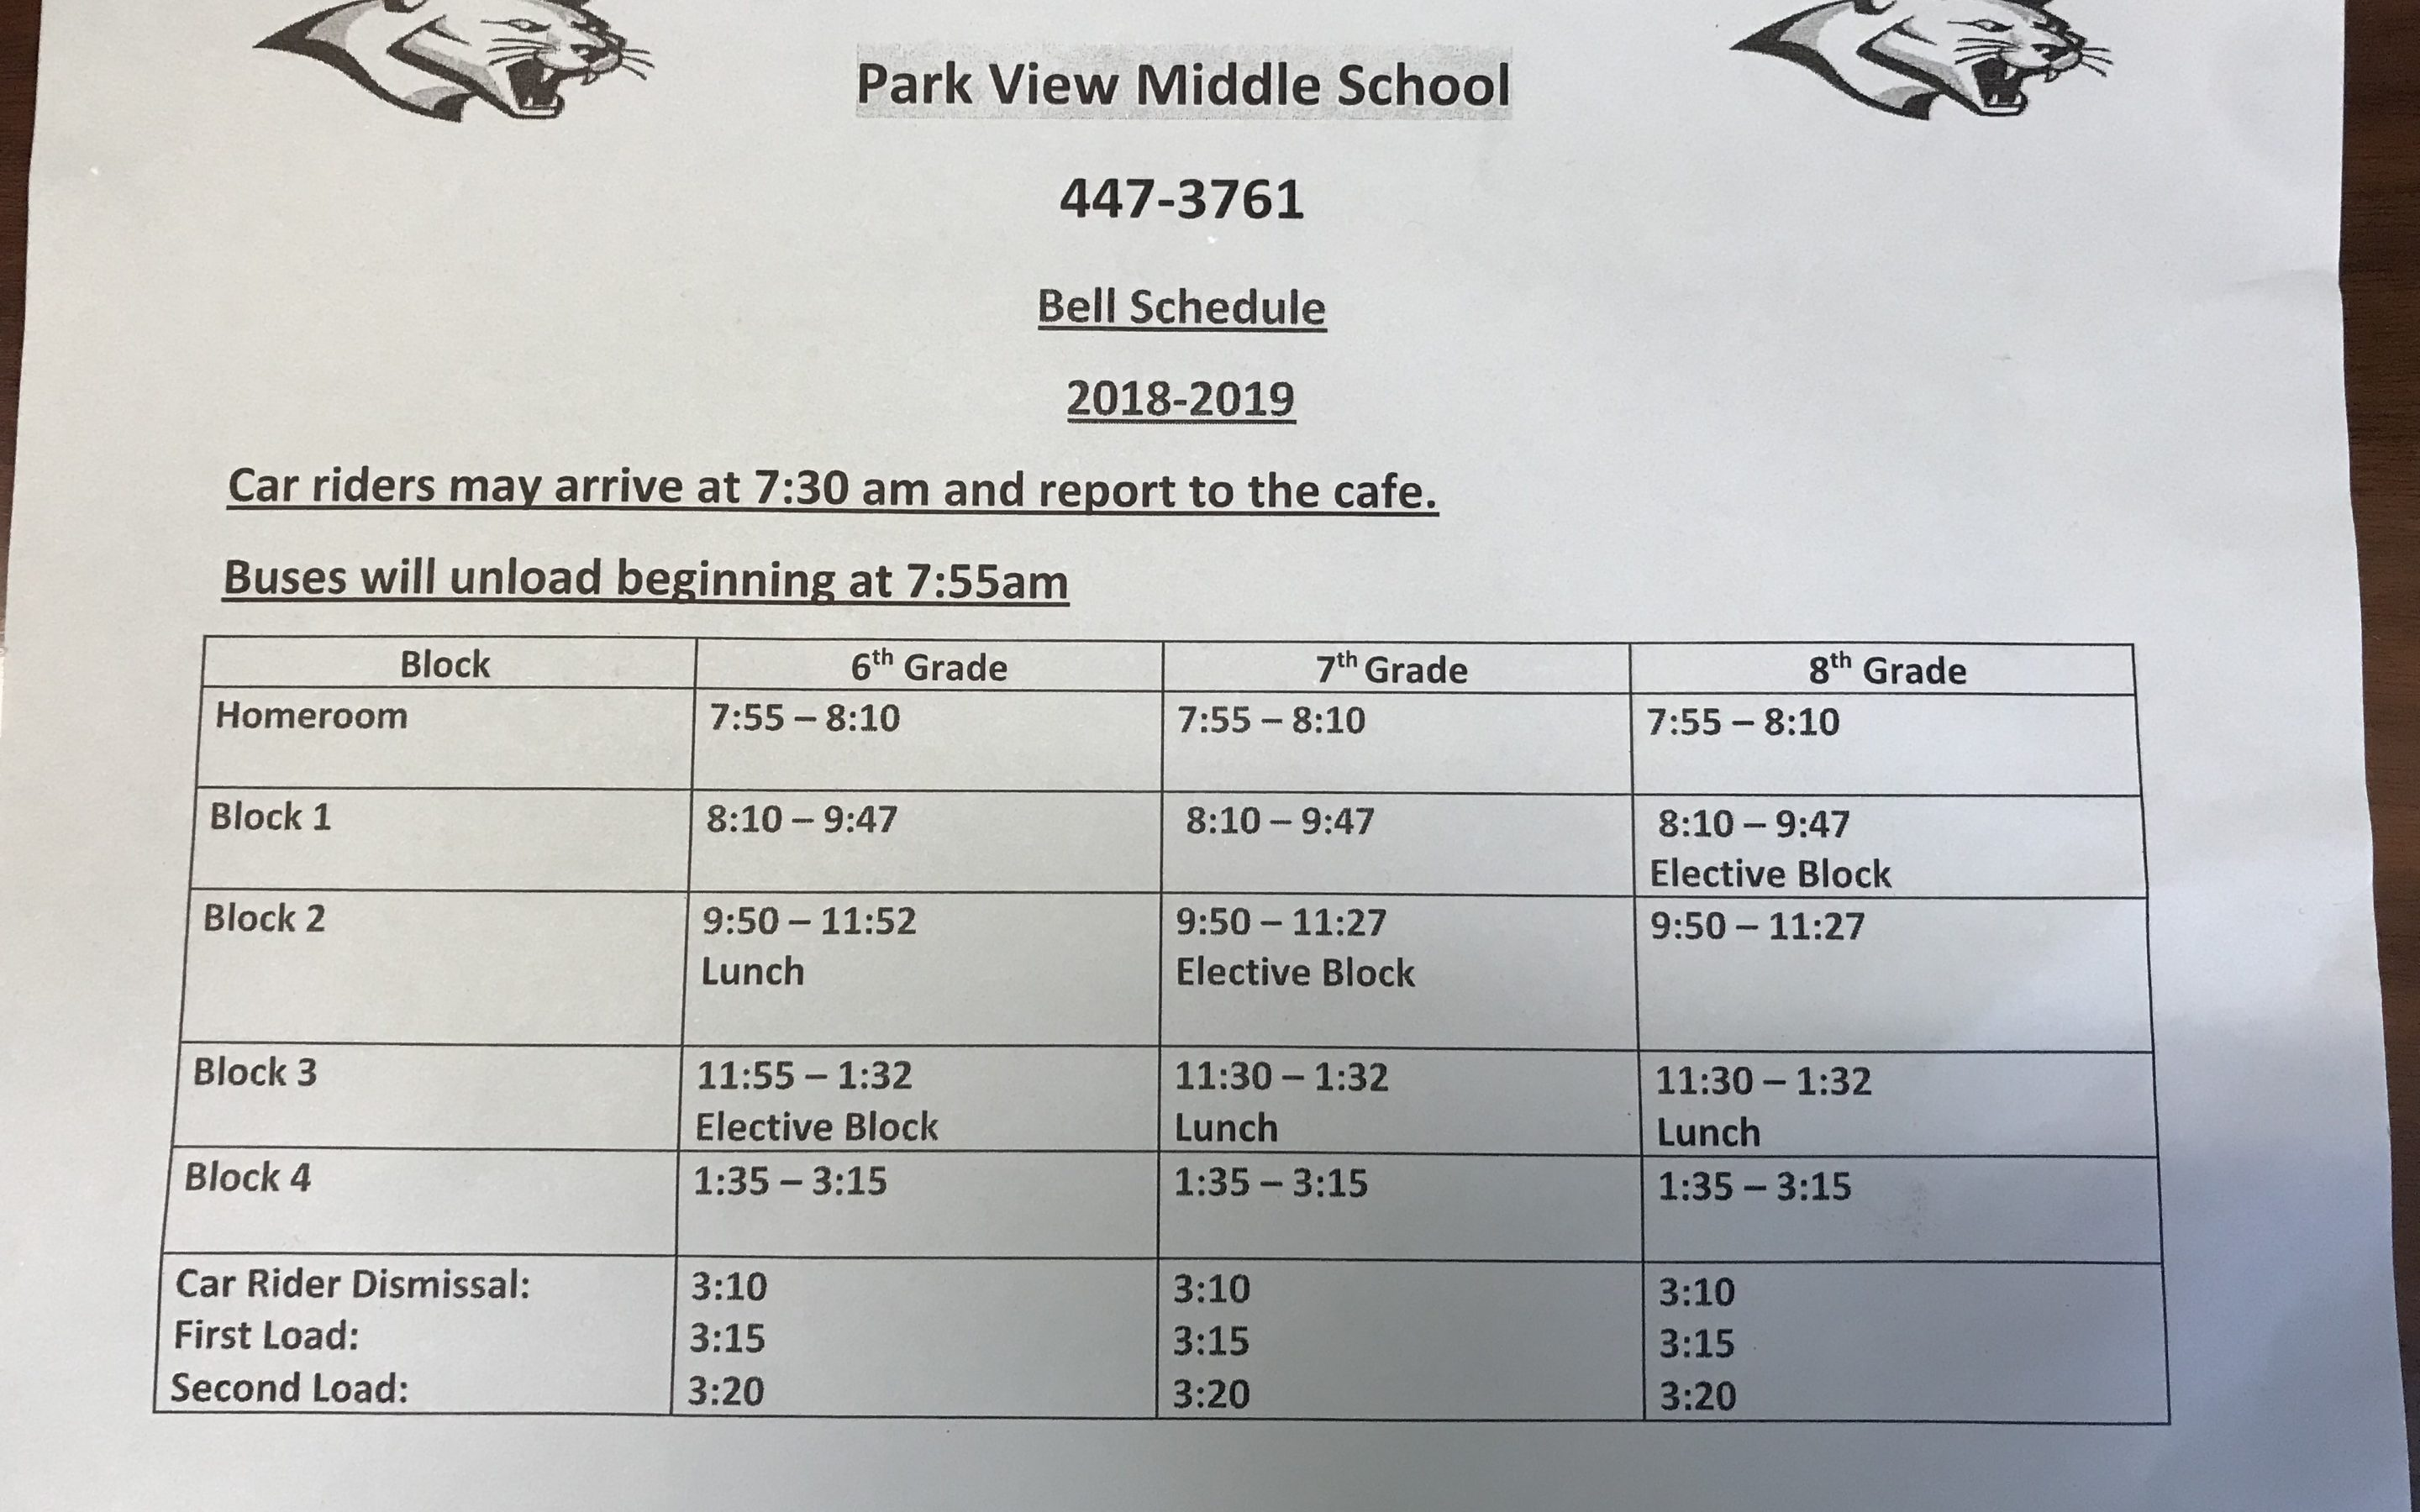 PVMS Bell Schedule